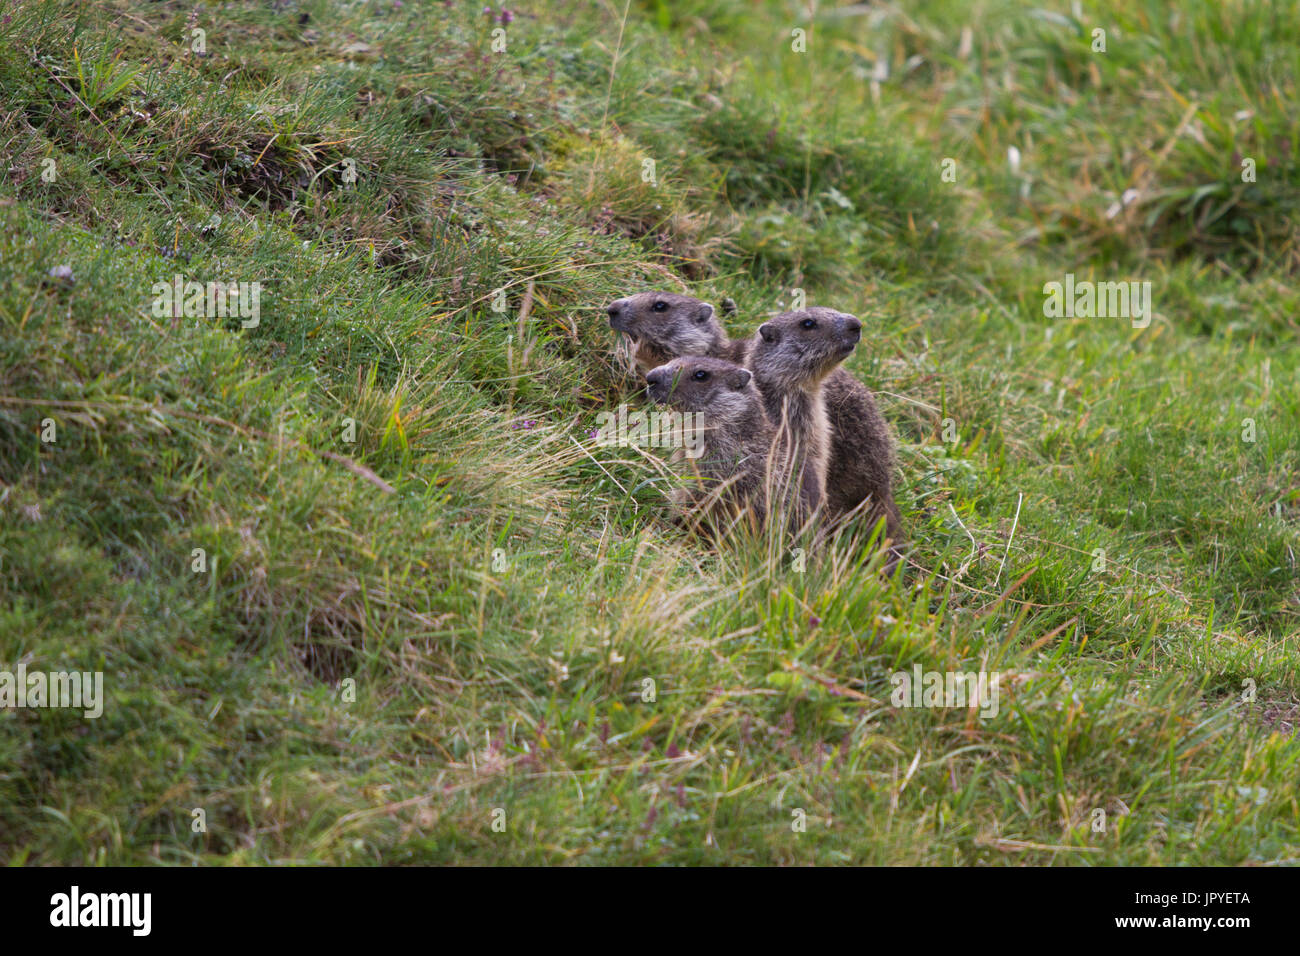 Young Alpine Marmots in the grass - Auvergne France - Stock Image